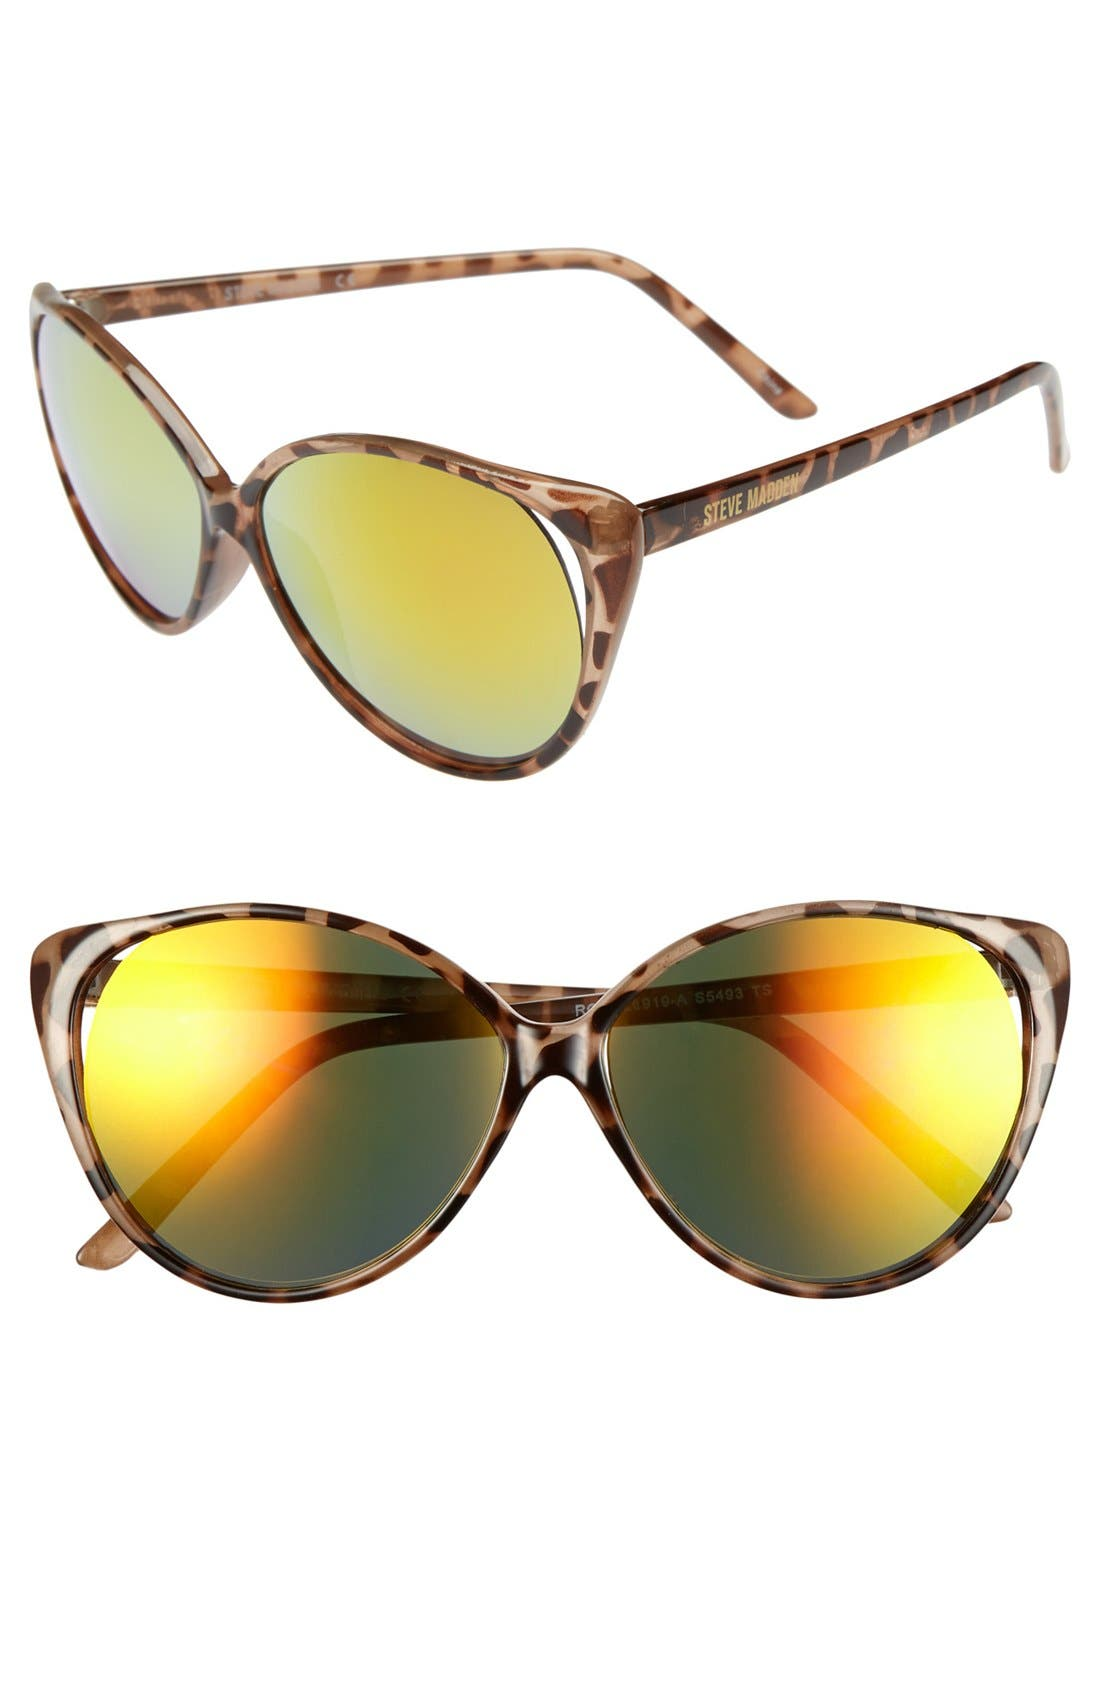 Alternate Image 1 Selected - Steve Madden 60mm Vented Cat Eye Sunglasses